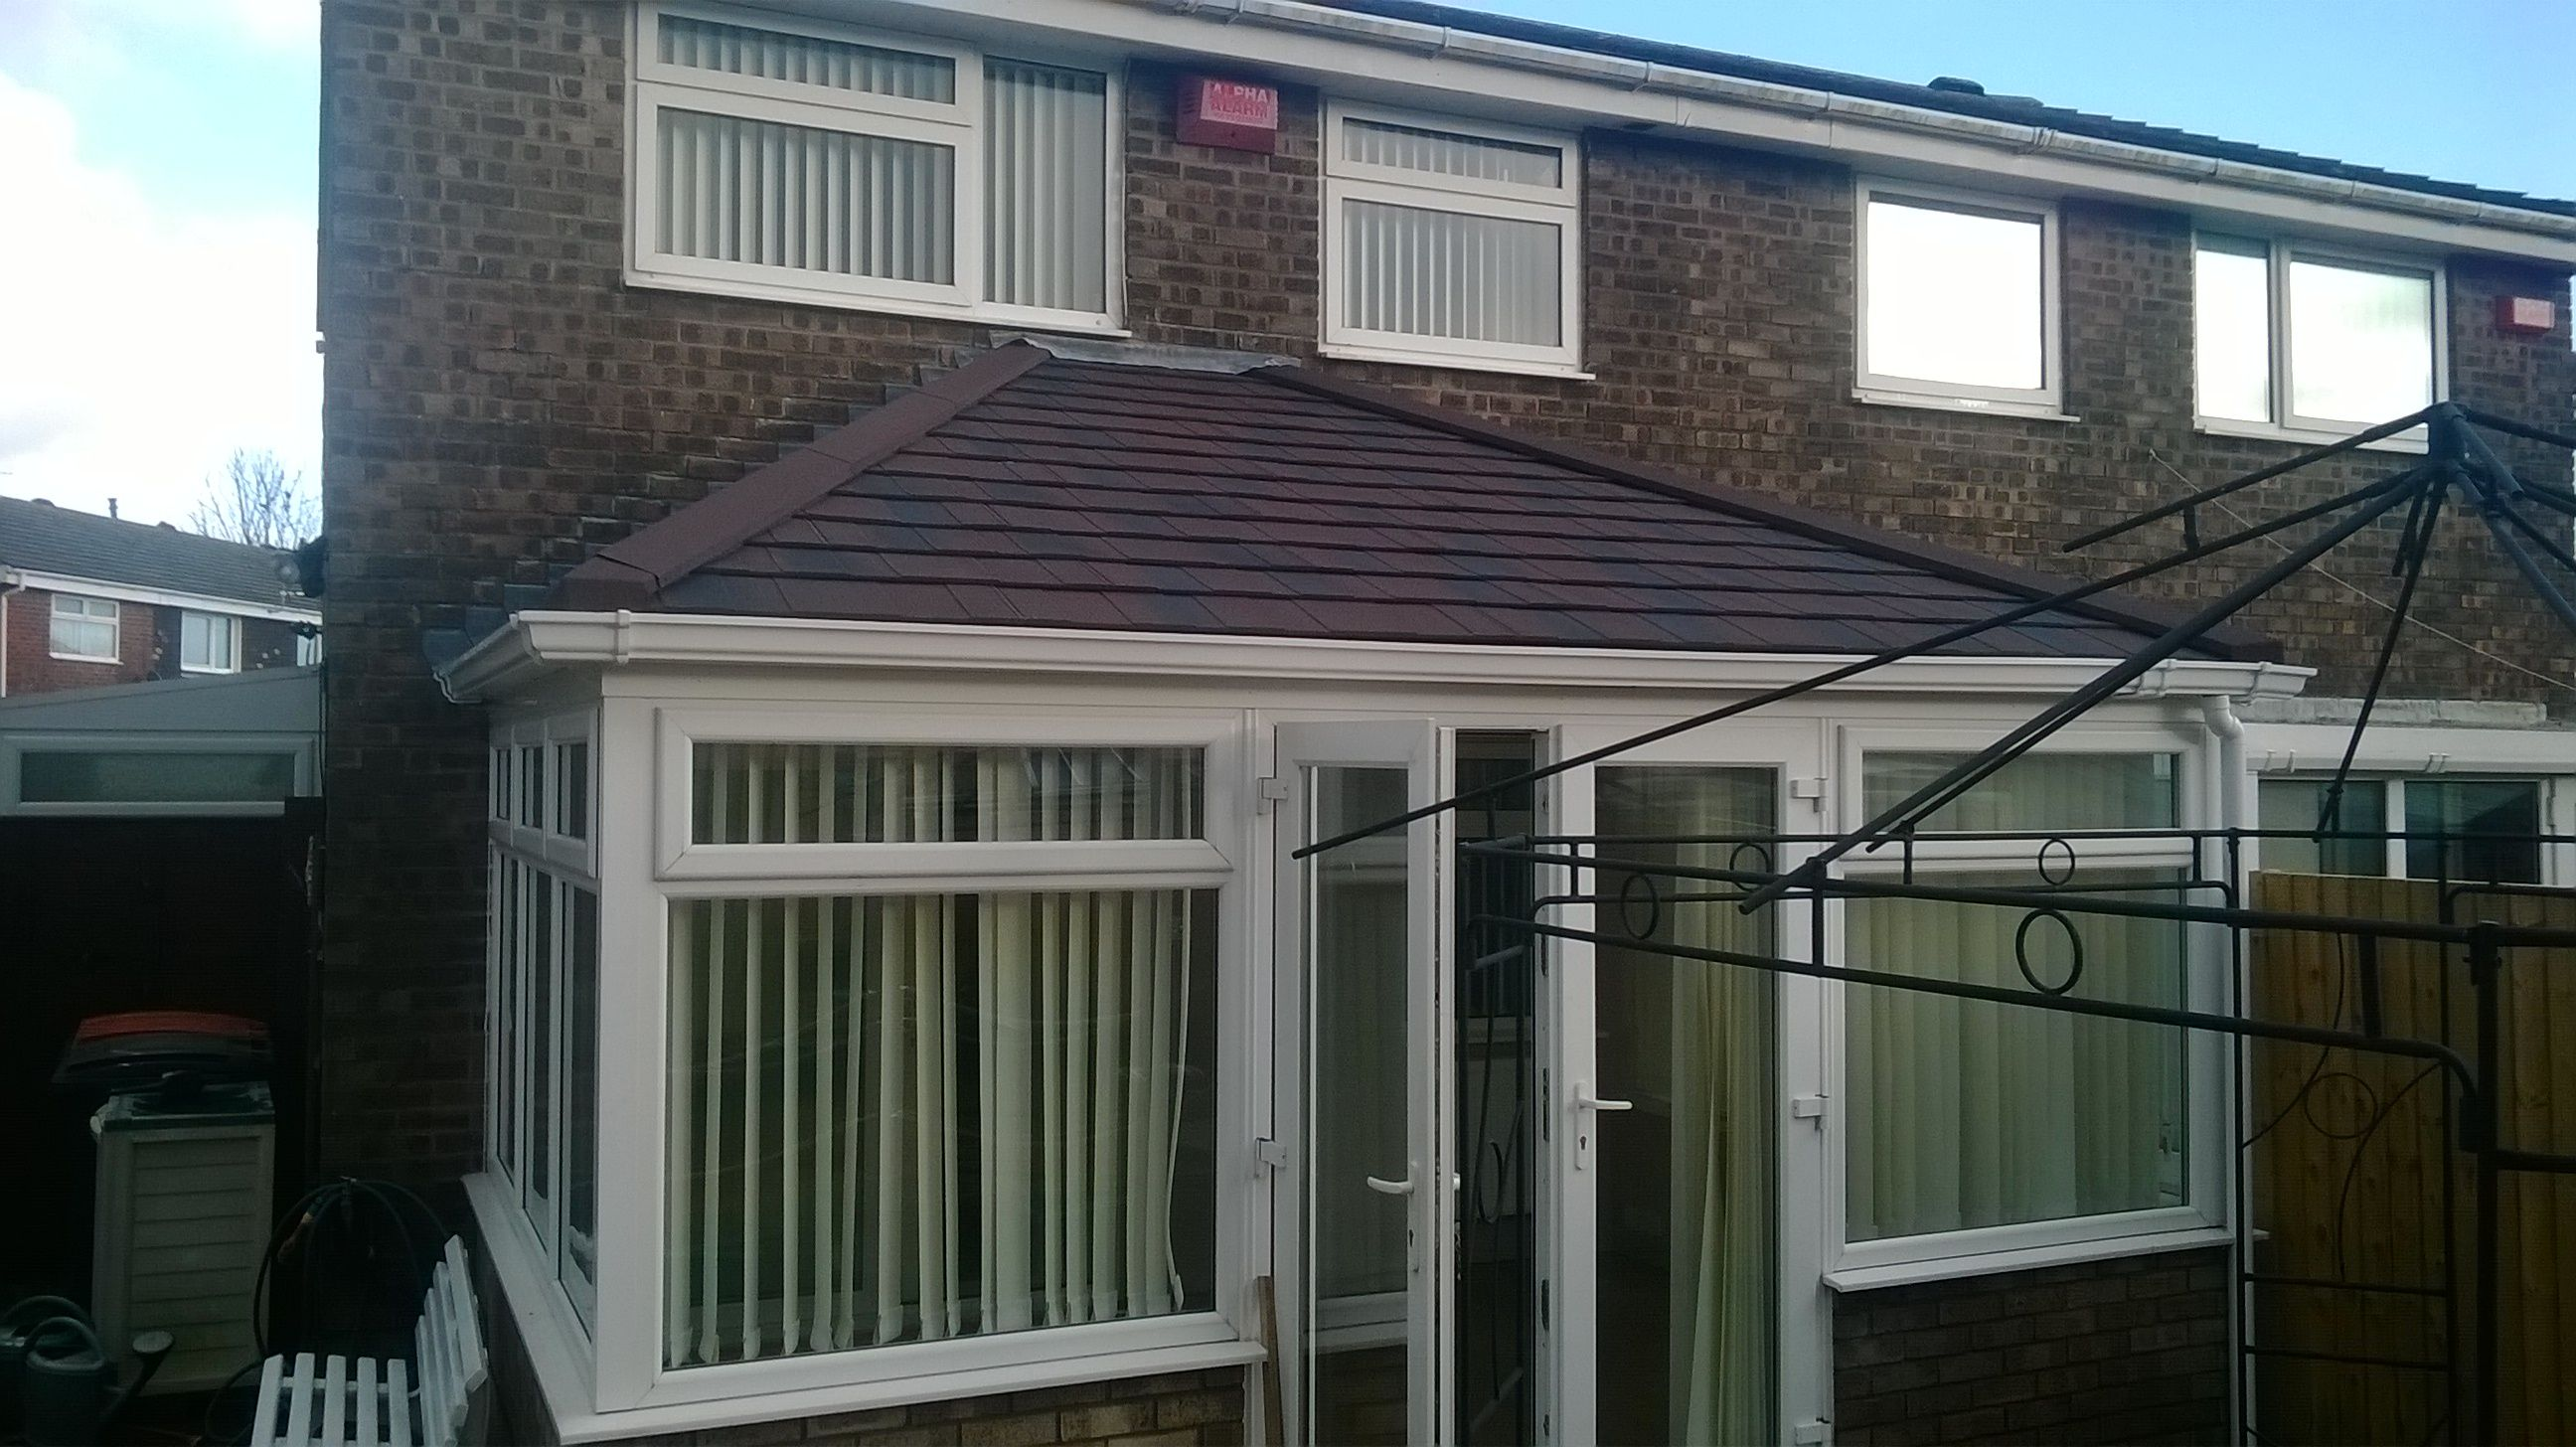 Hipped Lean To Tiled Conservatory Roof Tiled Conservatory Roof Conservatory Roof Lean To